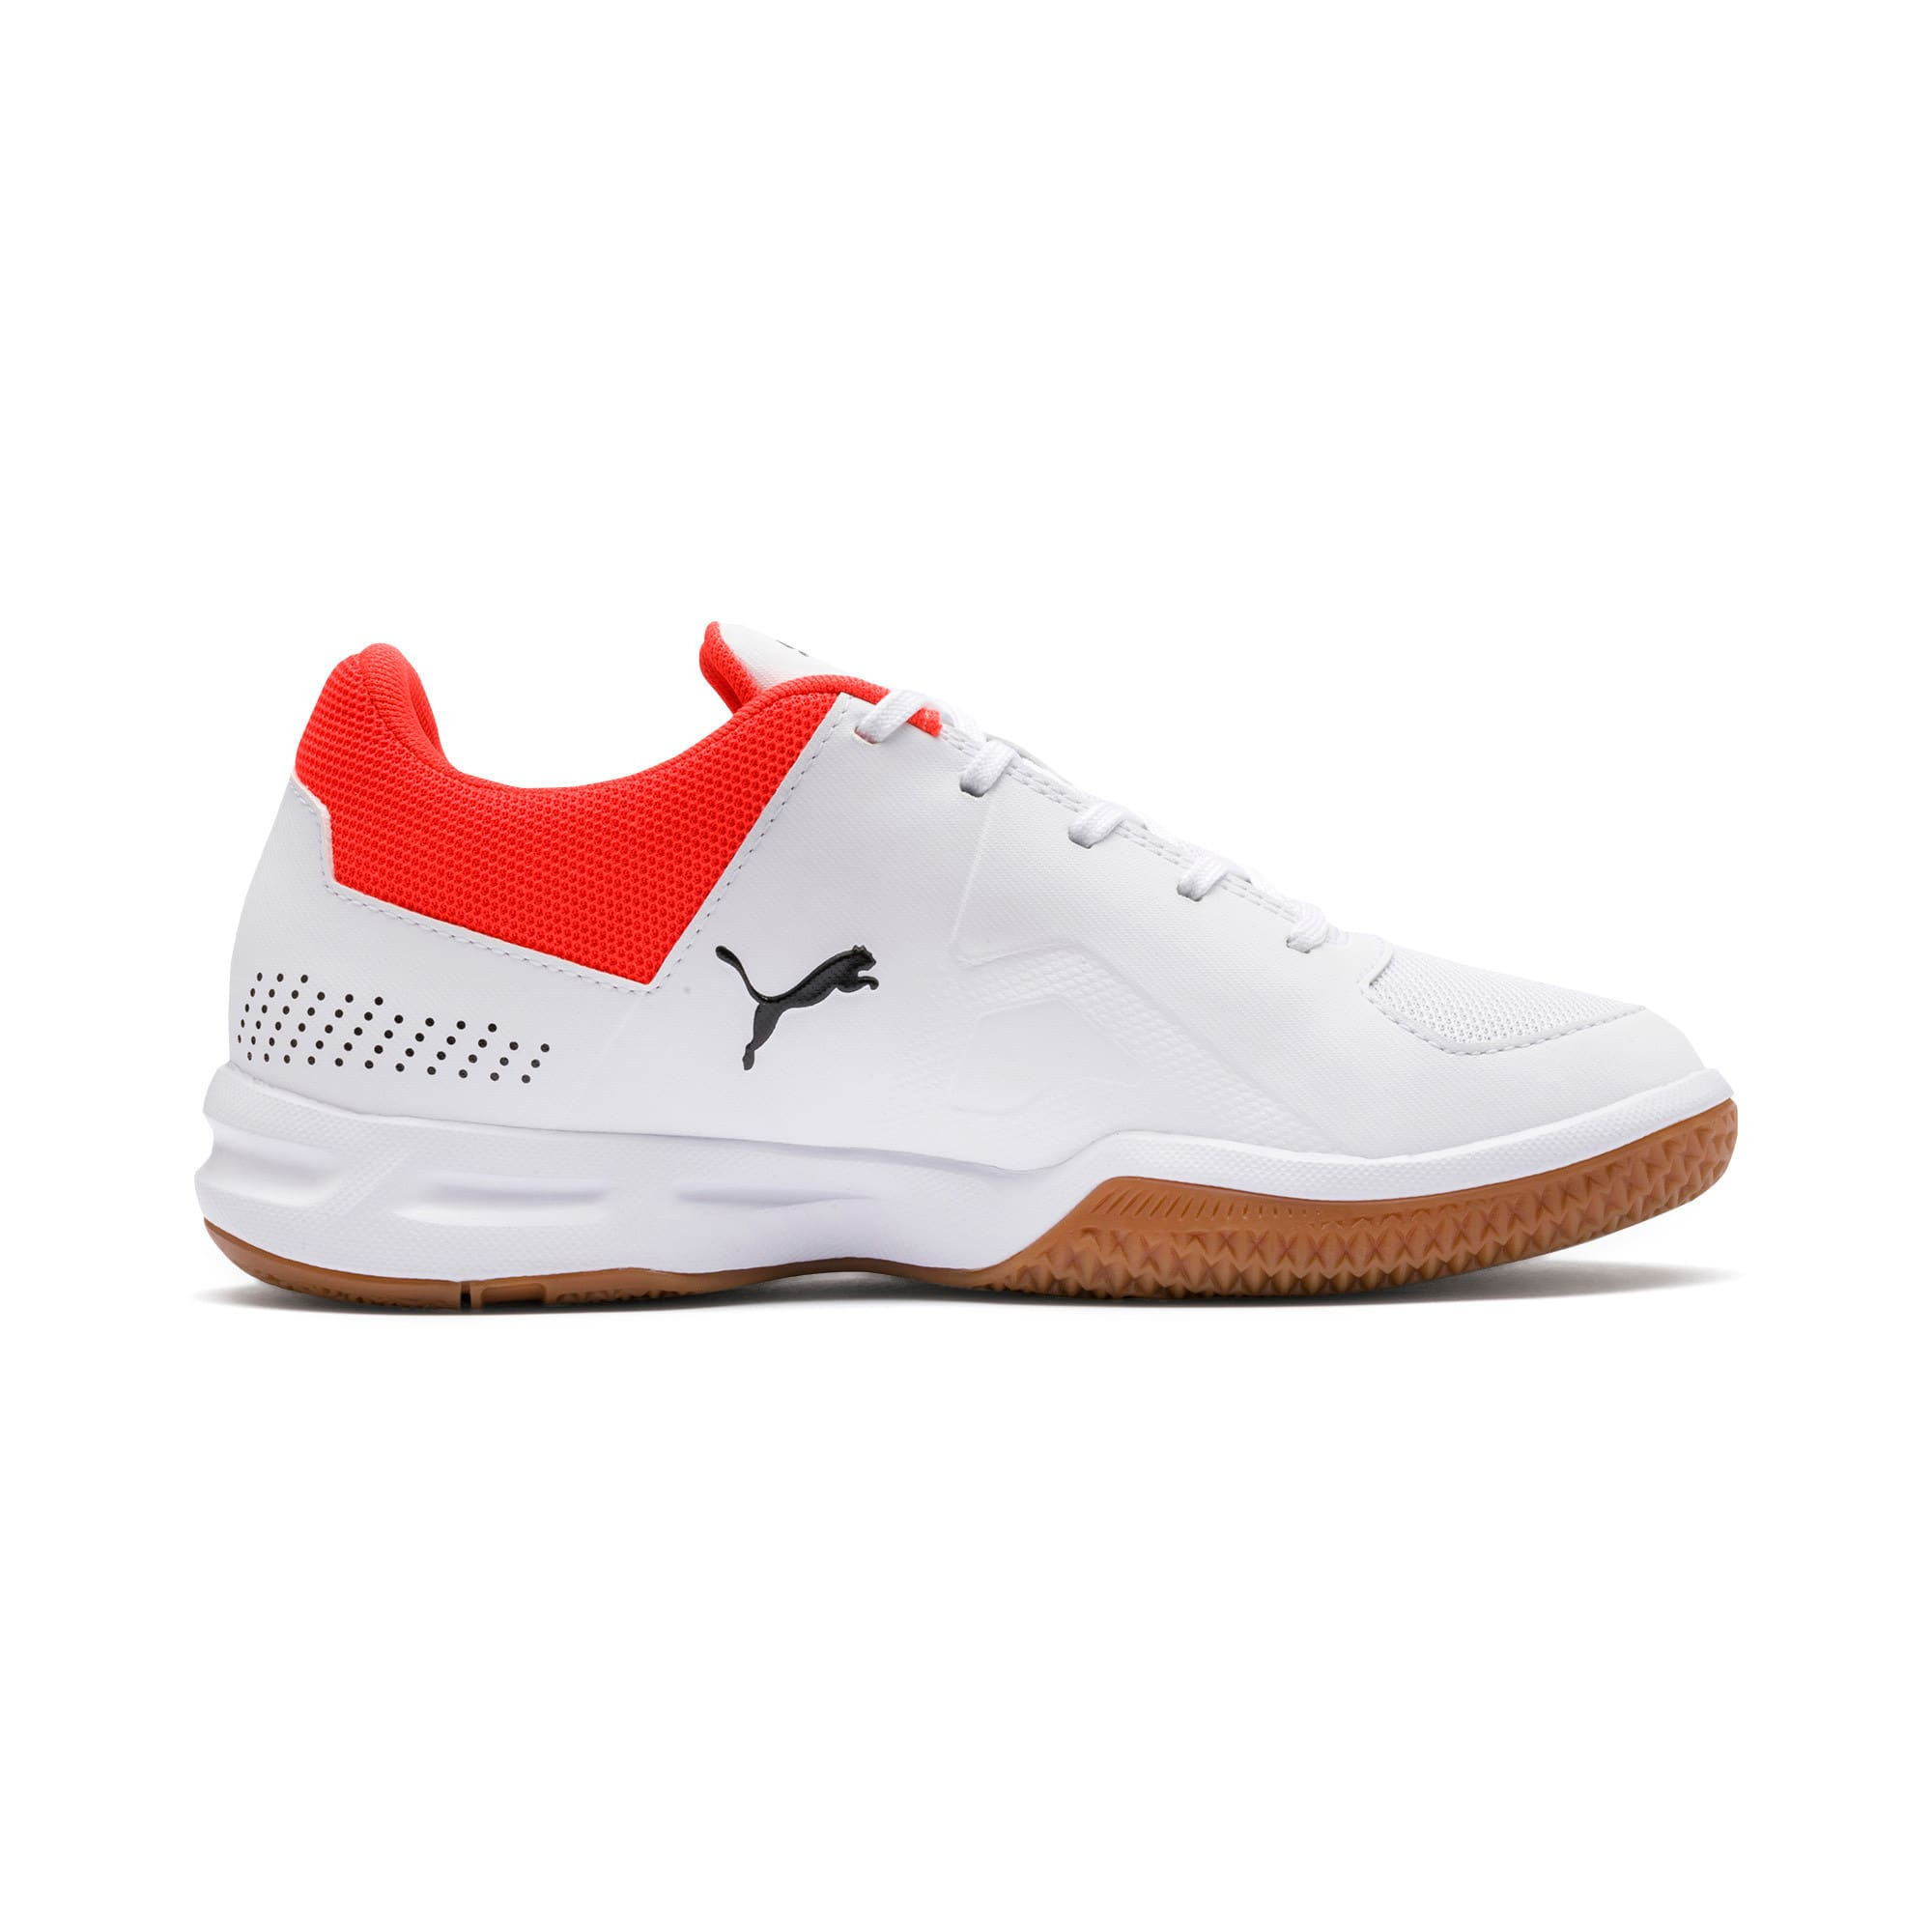 Thumbnail 5 of Auriz Youth Trainers, White-Black-Nrgy Red-Gum, medium